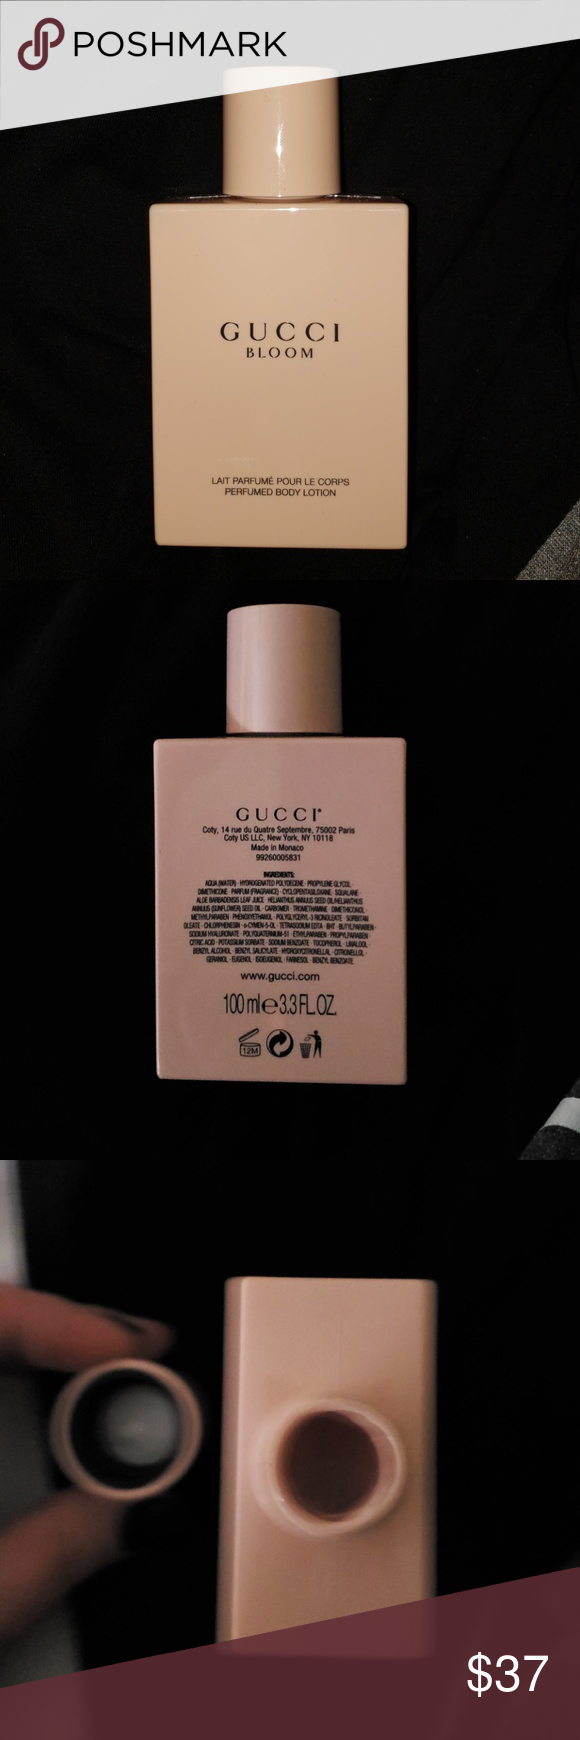 Gucci Brand New Bloom 100ml 3 3 Fl Oz Gucci Brand Body Lotion Brands Gucci